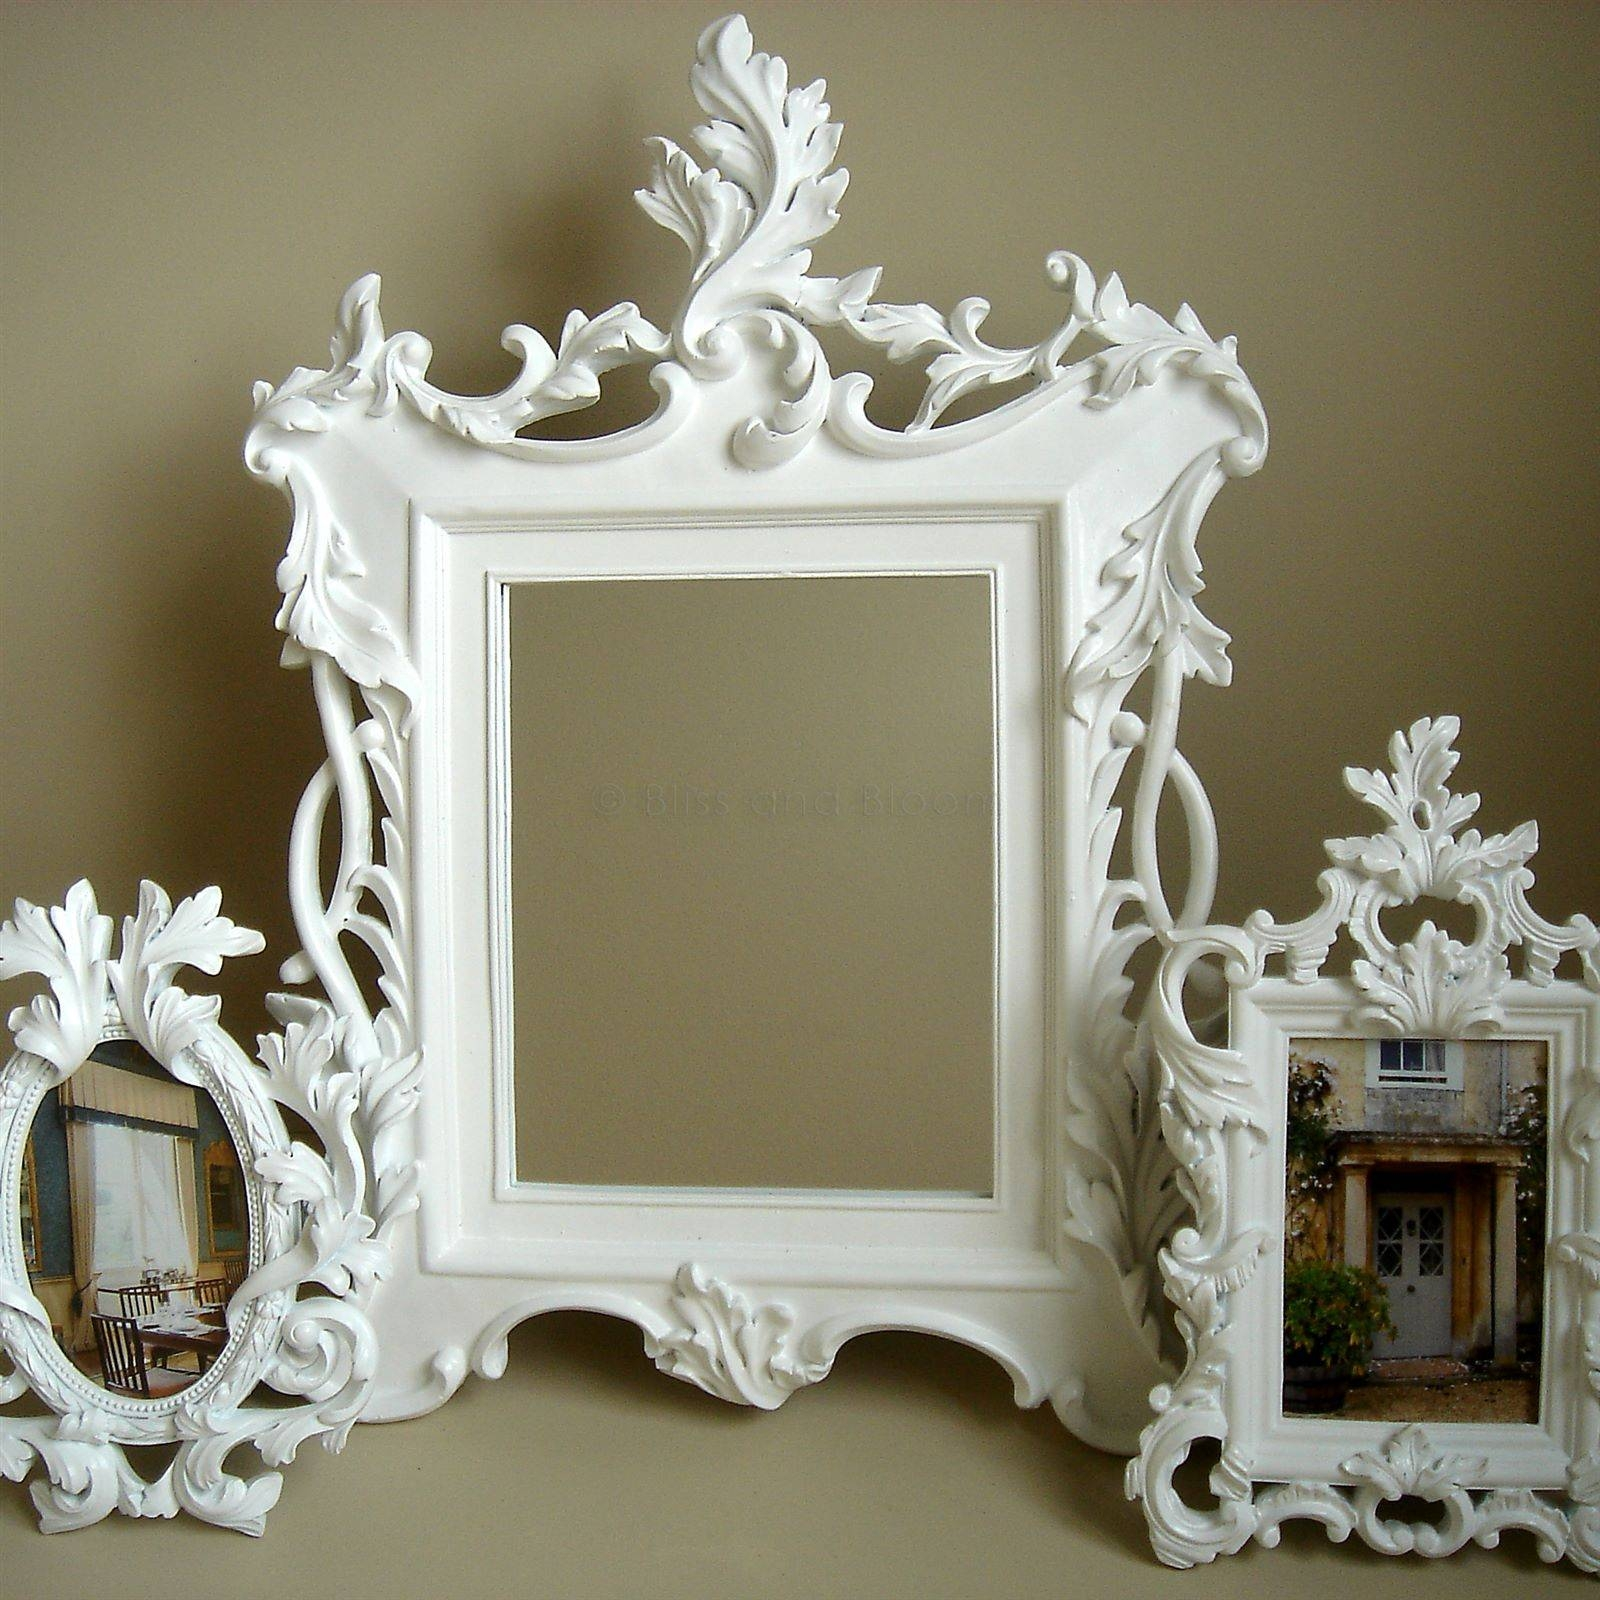 Bathroom: Astounding Baroque Mirror With Unique Frame For Bathroom within White Baroque Floor Mirrors (Image 5 of 25)